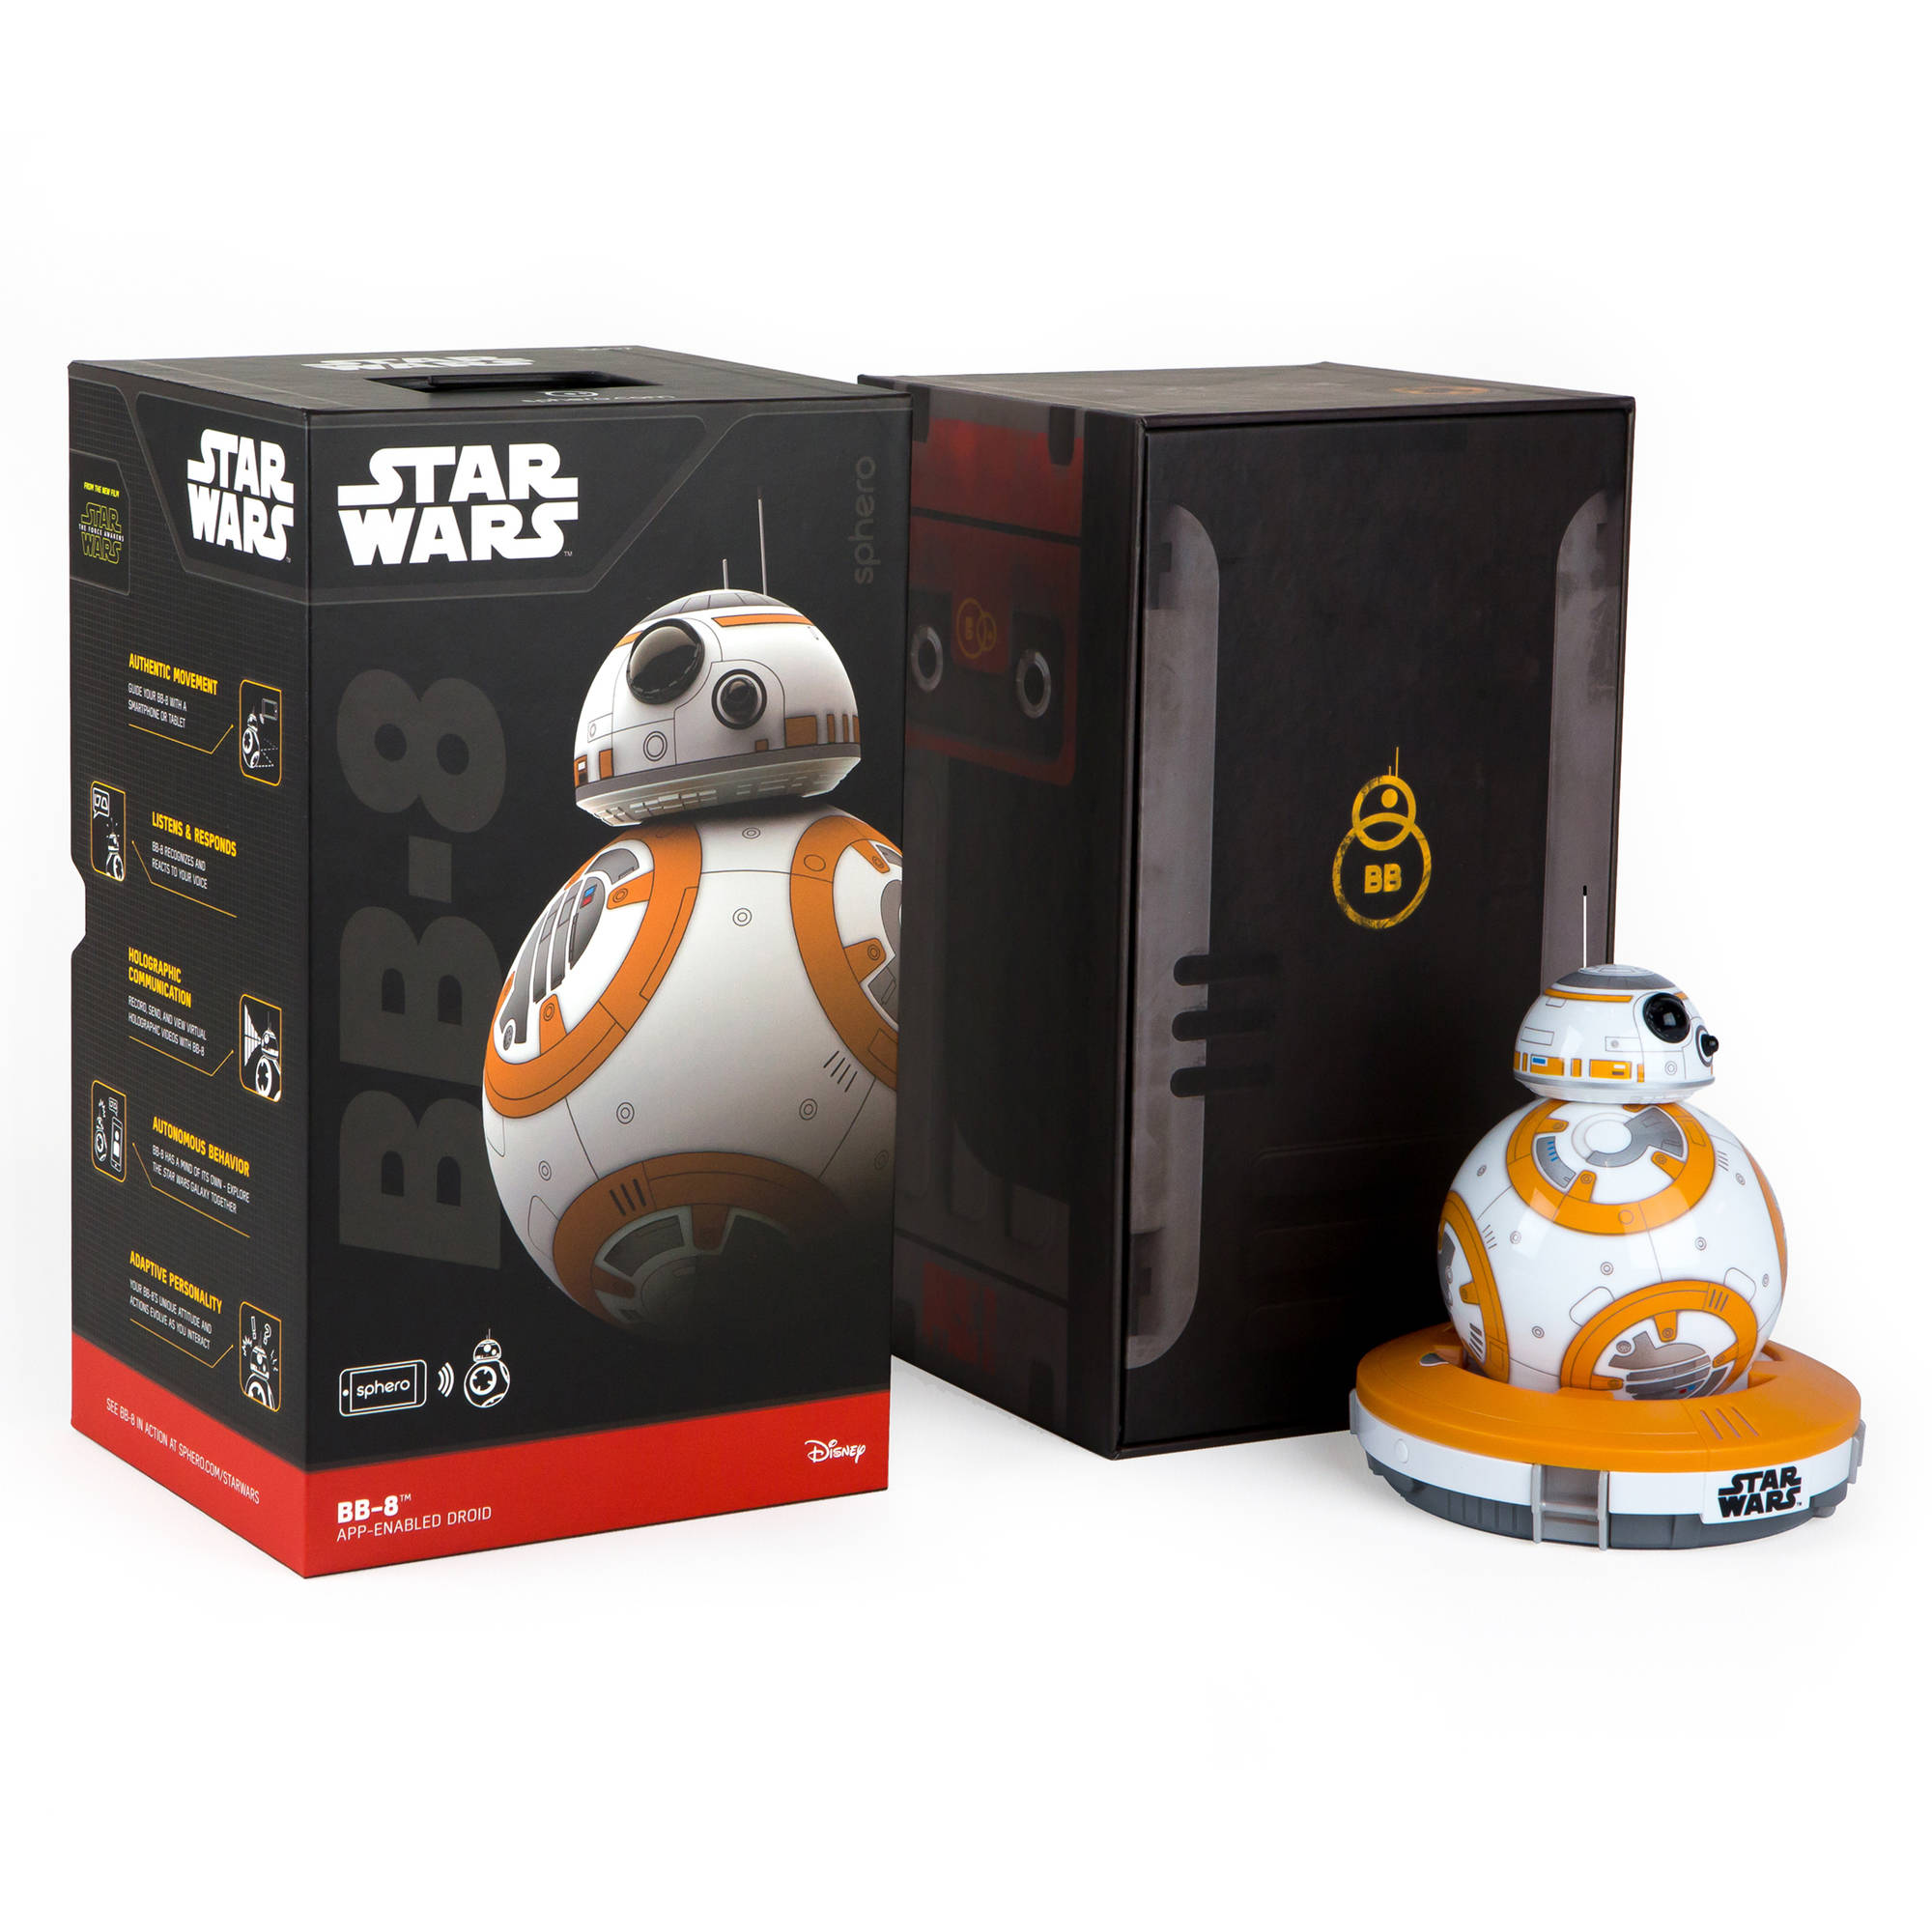 AFB01USA Brand new Disney Star Wars Force Band by Sphero For BB-8 Droid